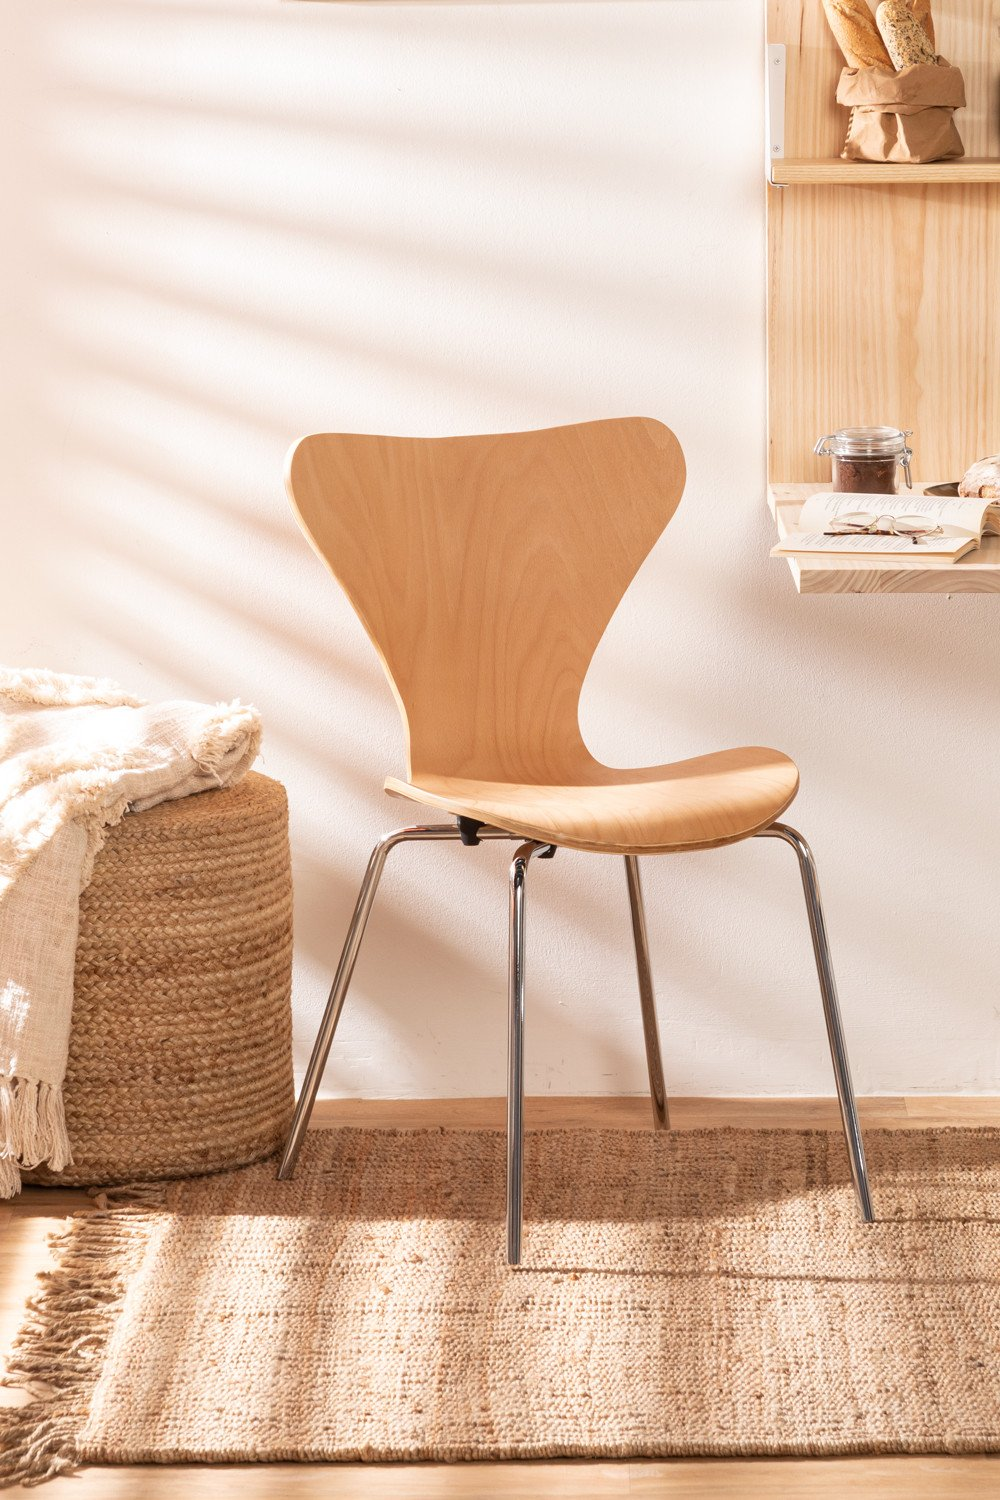 Chair in Wood and Steel Uit, gallery image 1